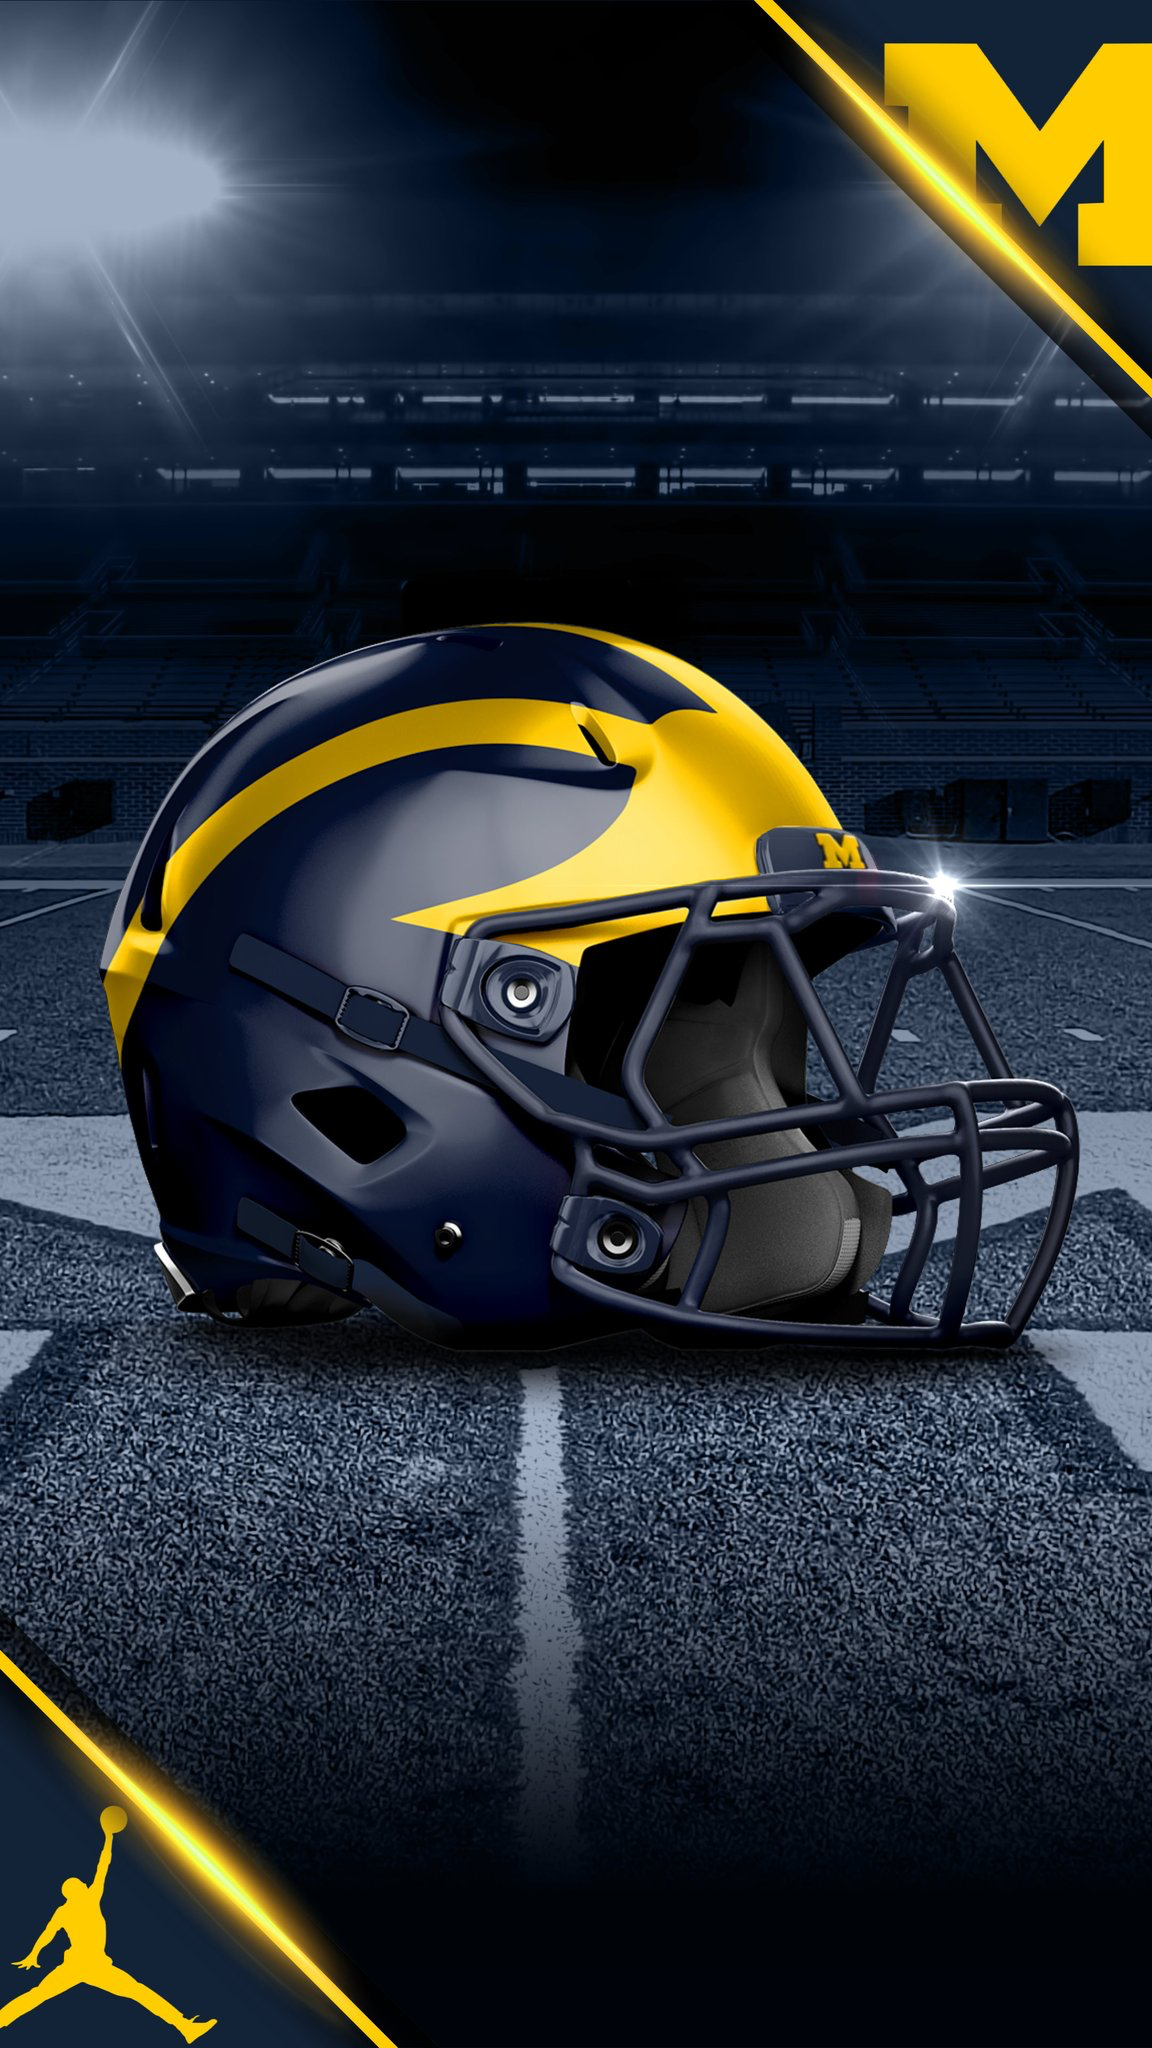 Football Baby College Memes Season Michigan Wolverines Wallpaper Sports Wallpapers American